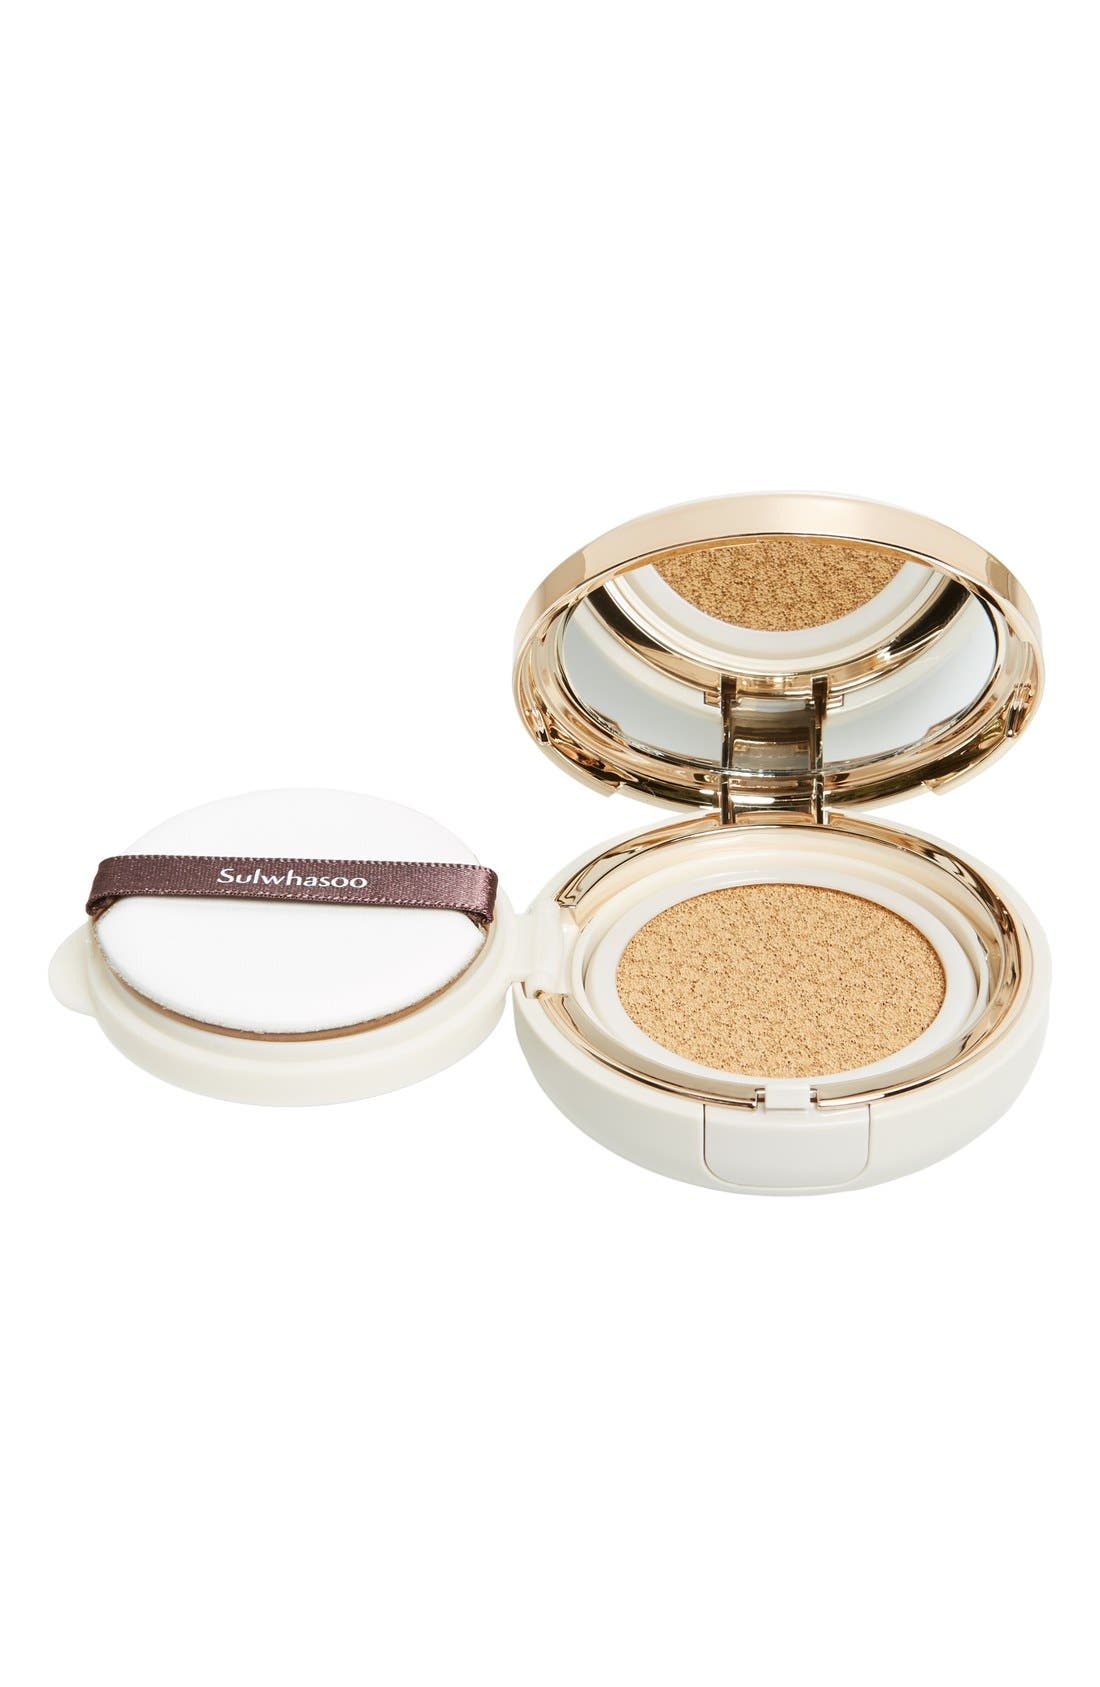 'Perfecting Cushion' Foundation Compact,                             Alternate thumbnail 3, color,                             23 MEDIUM BEIGE